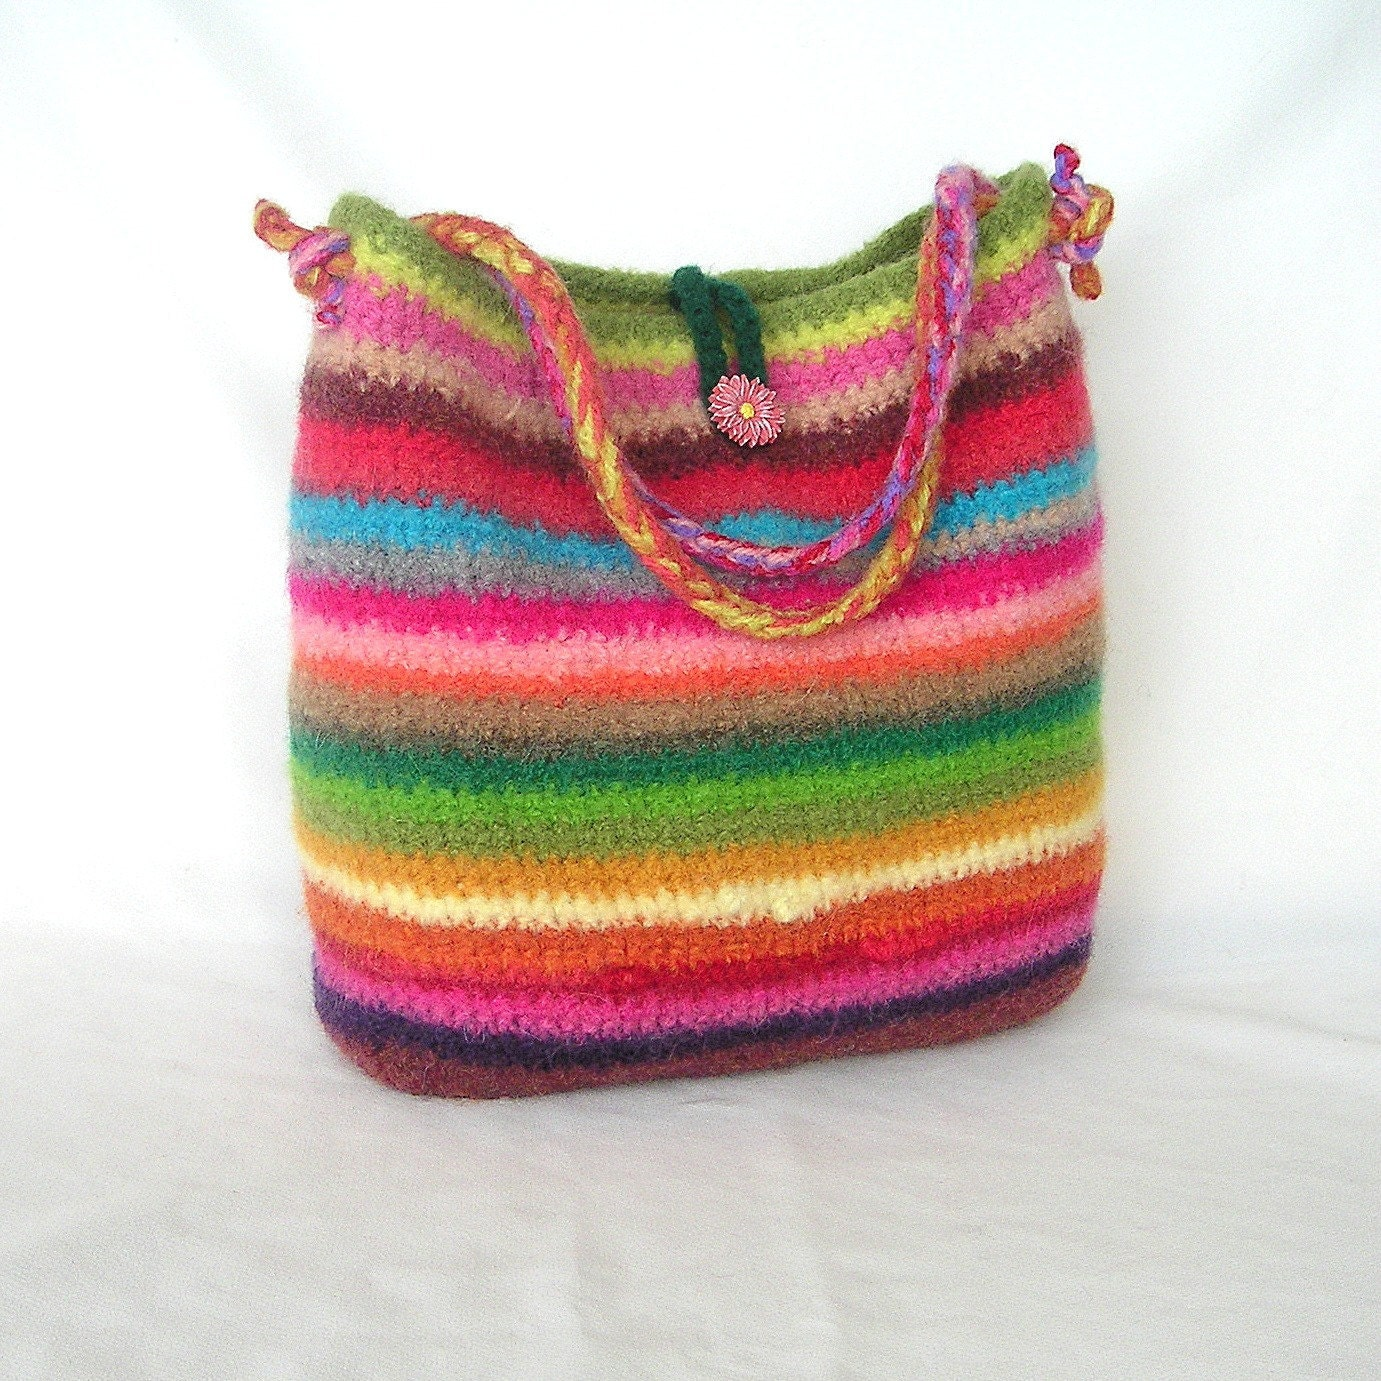 Crochet Backpack Bag Pattern : Rainbow Felted Bag Crochet Pattern by GraceKnittingPattern on Etsy